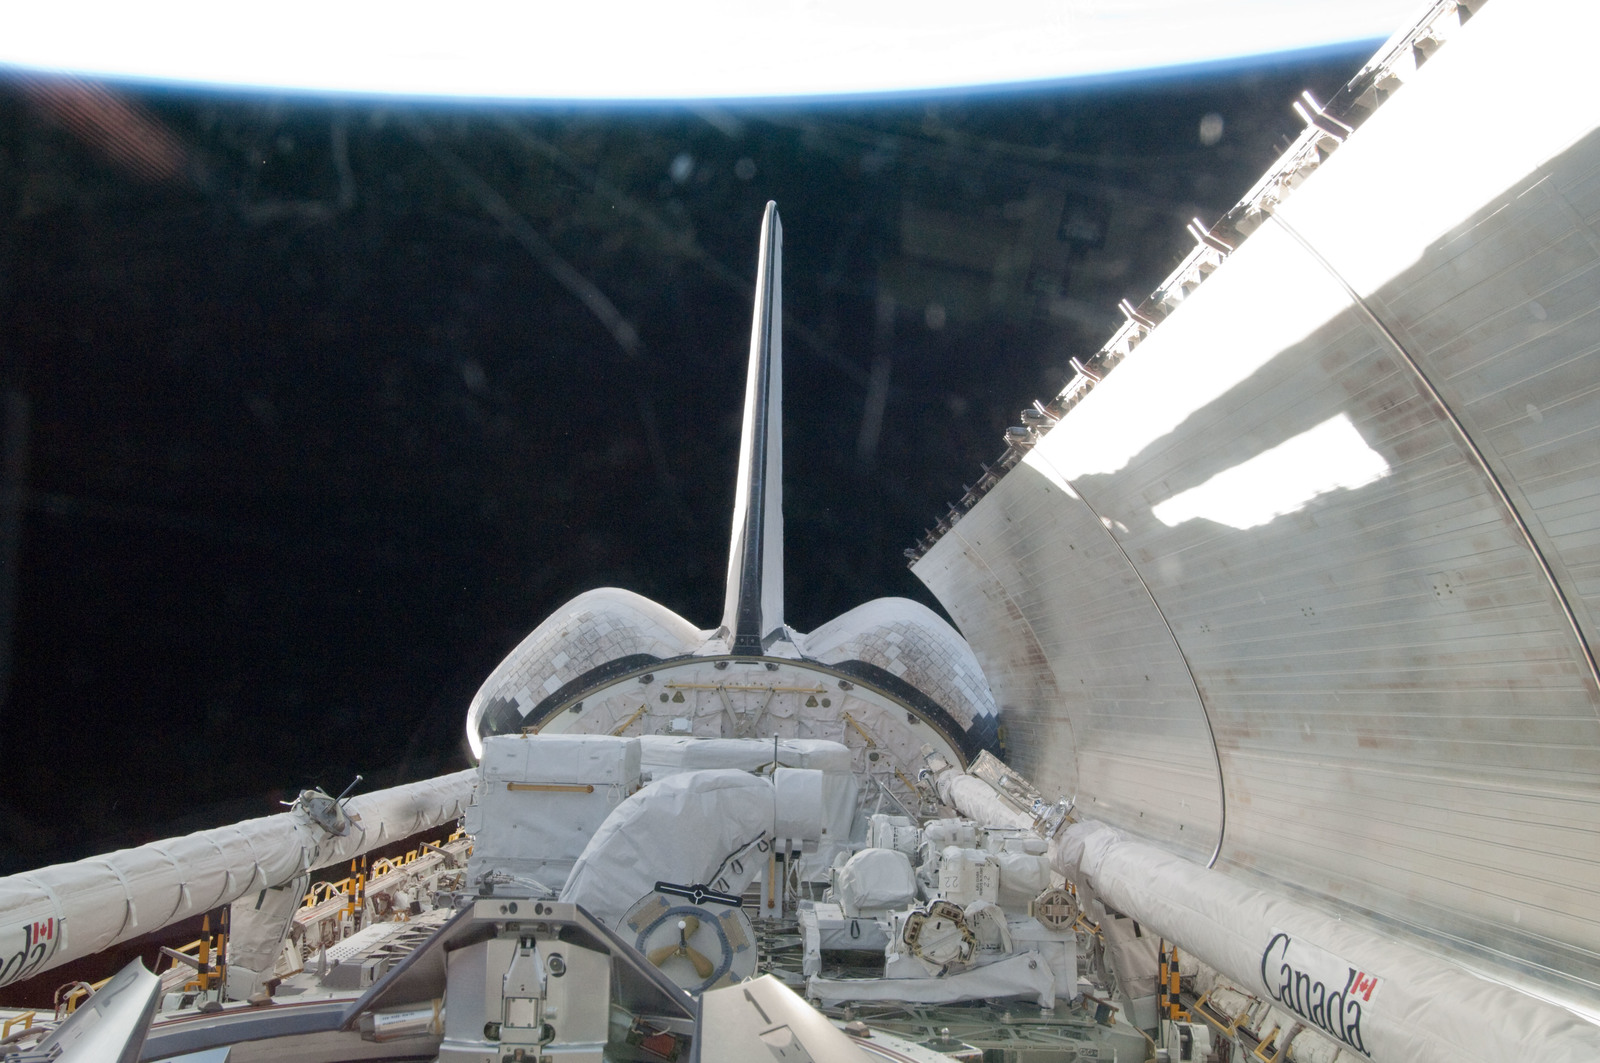 S134E005312 - STS-134 - View of the Shuttle Endeavour Payload Bay